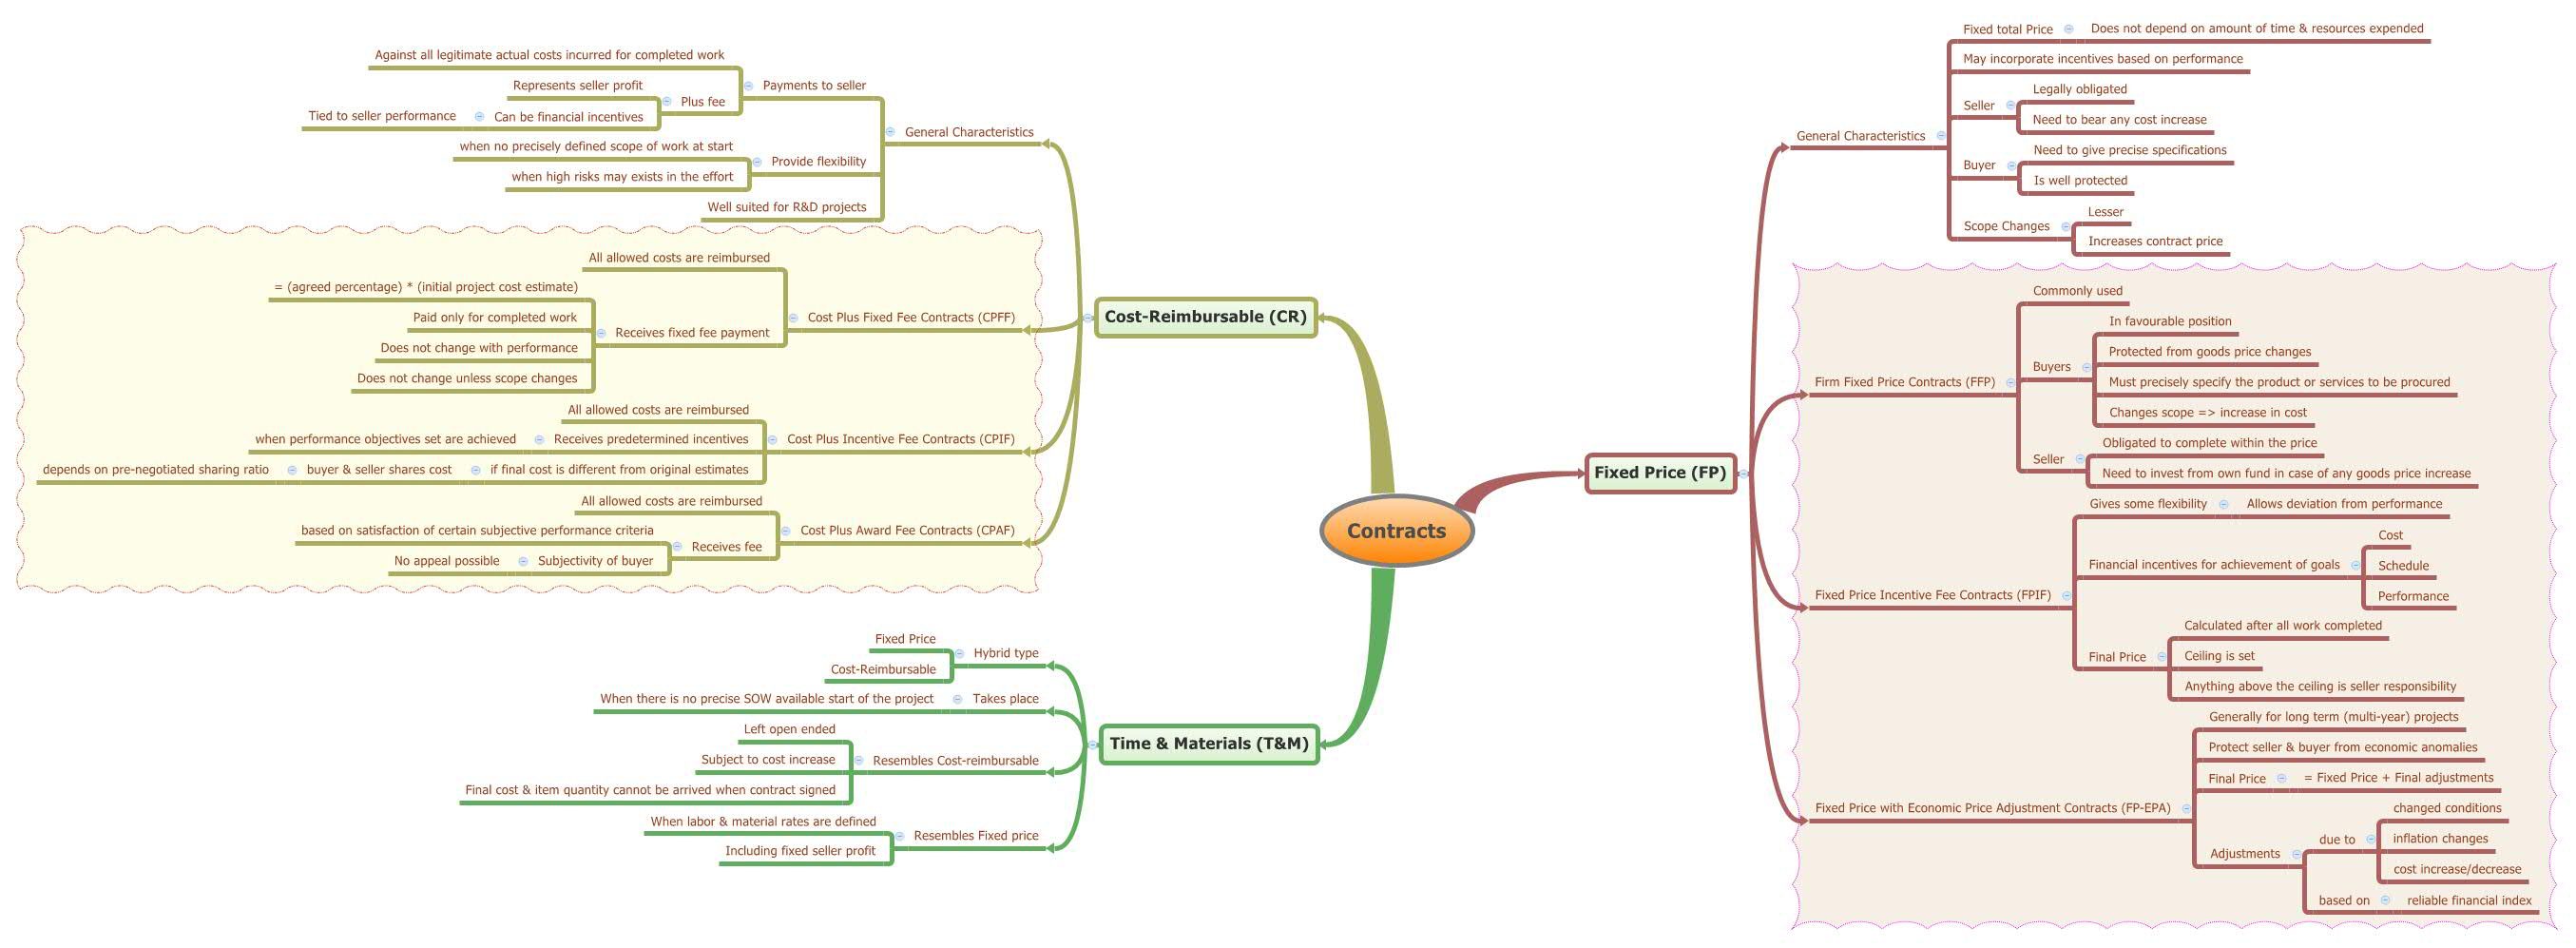 Procurement Managements  Different Types Of Contracts  Mind Map